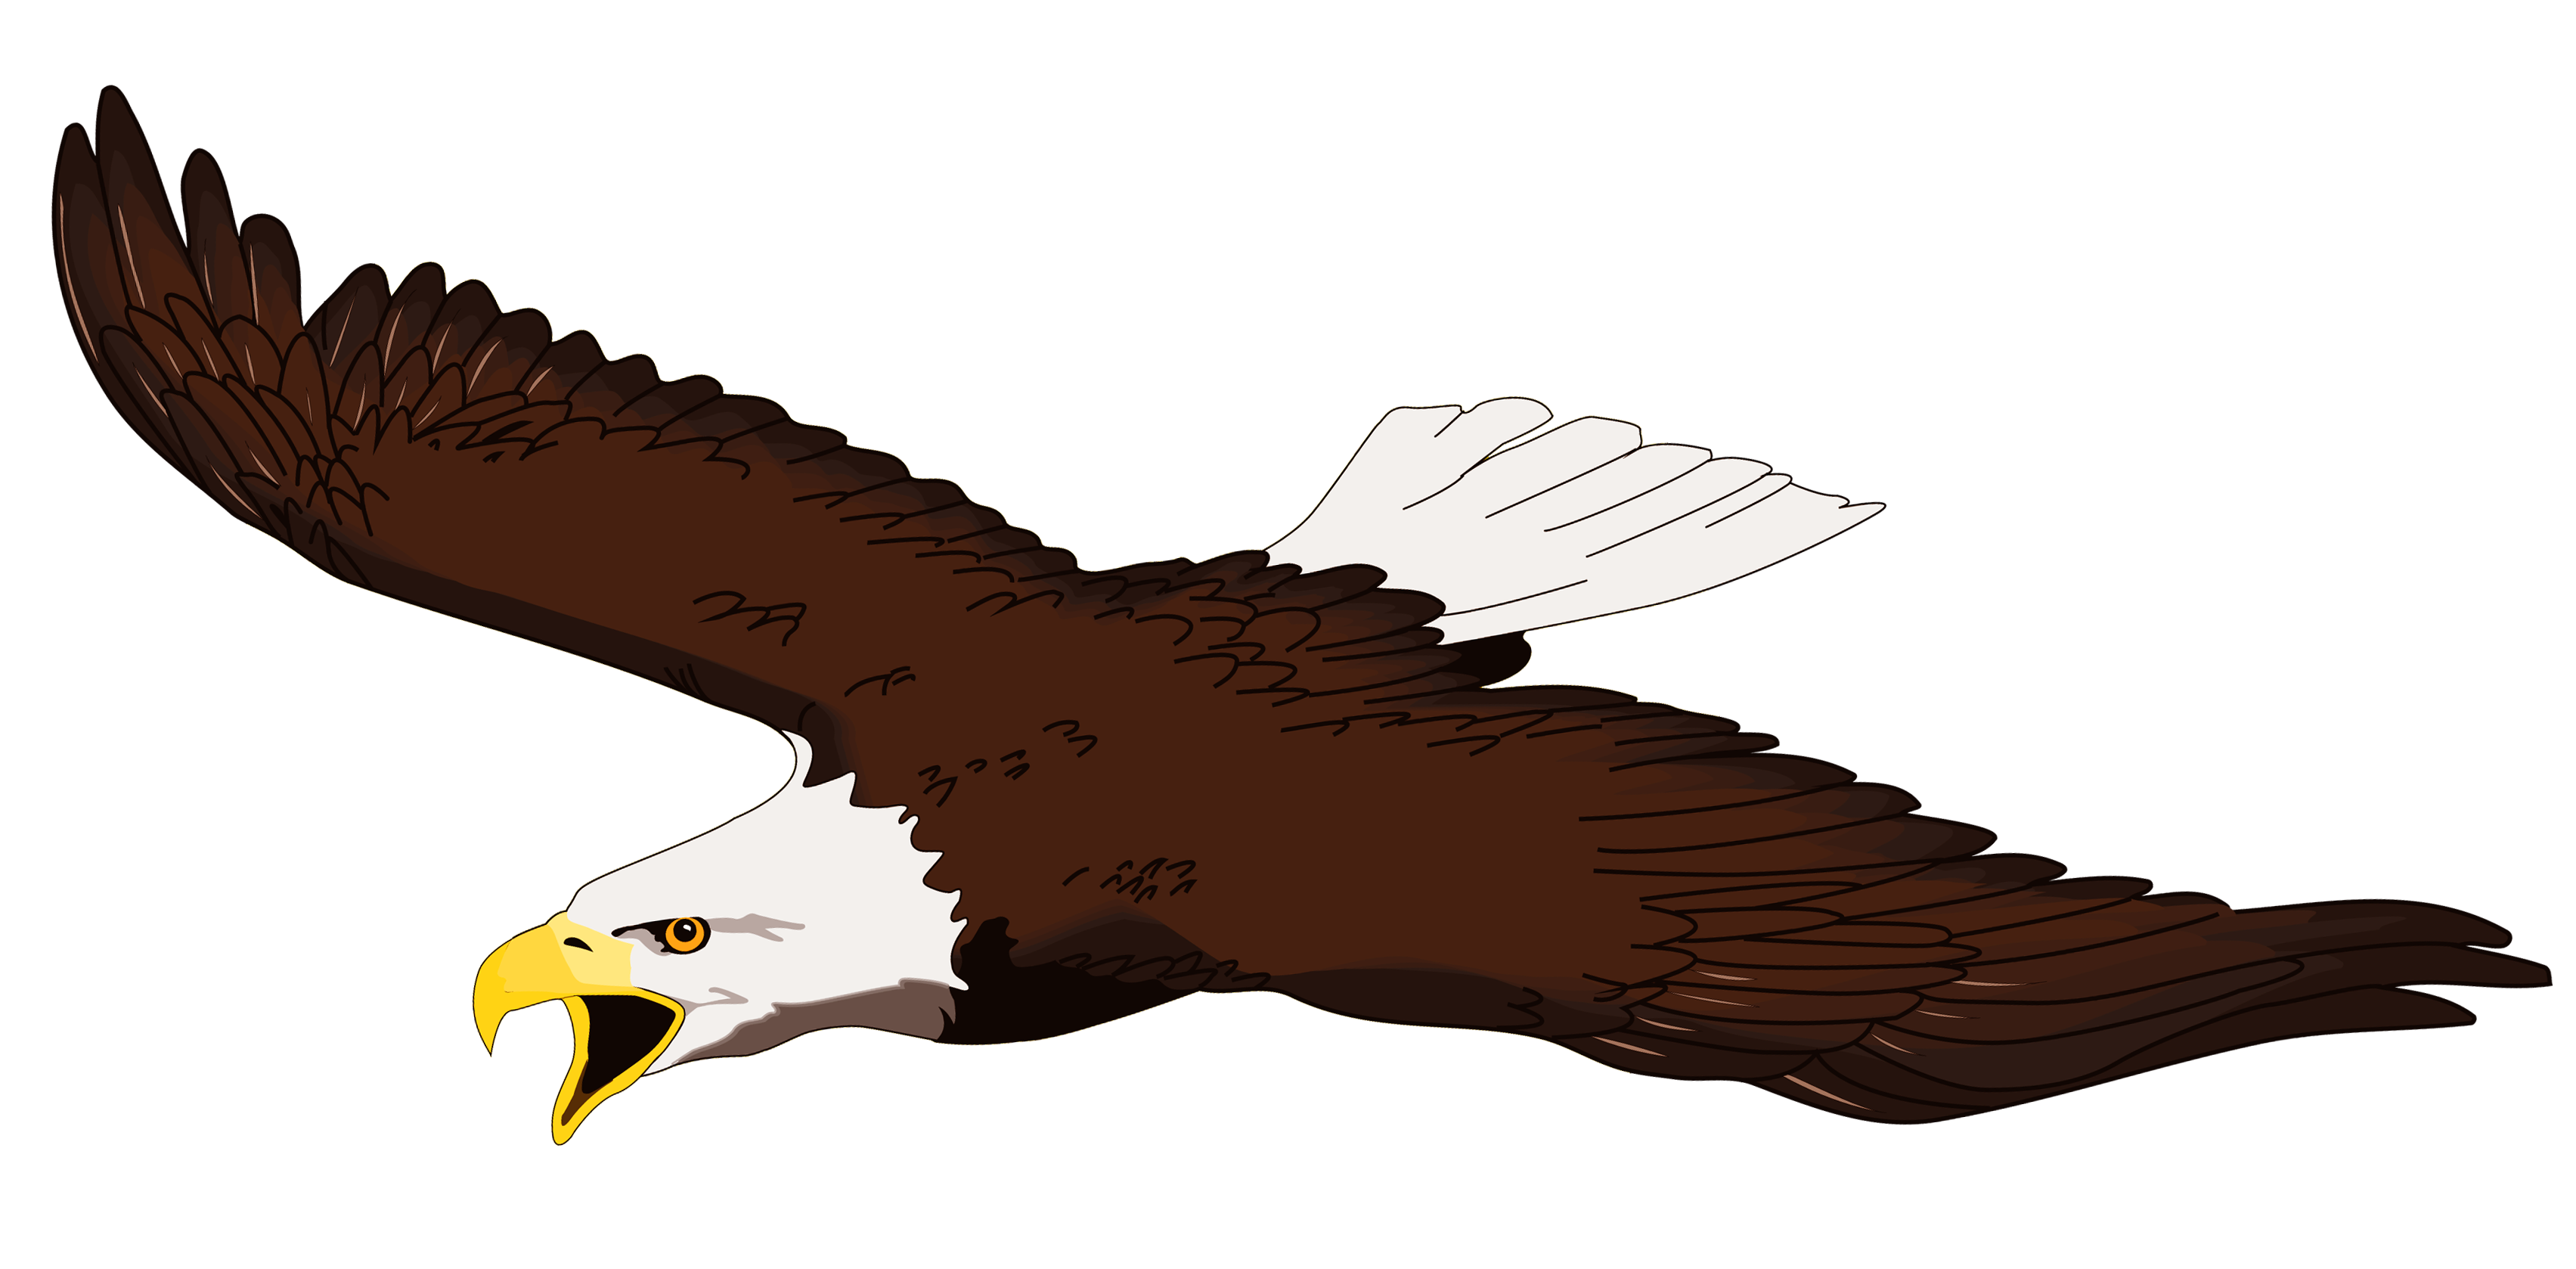 flying eagle clip art - photo #26